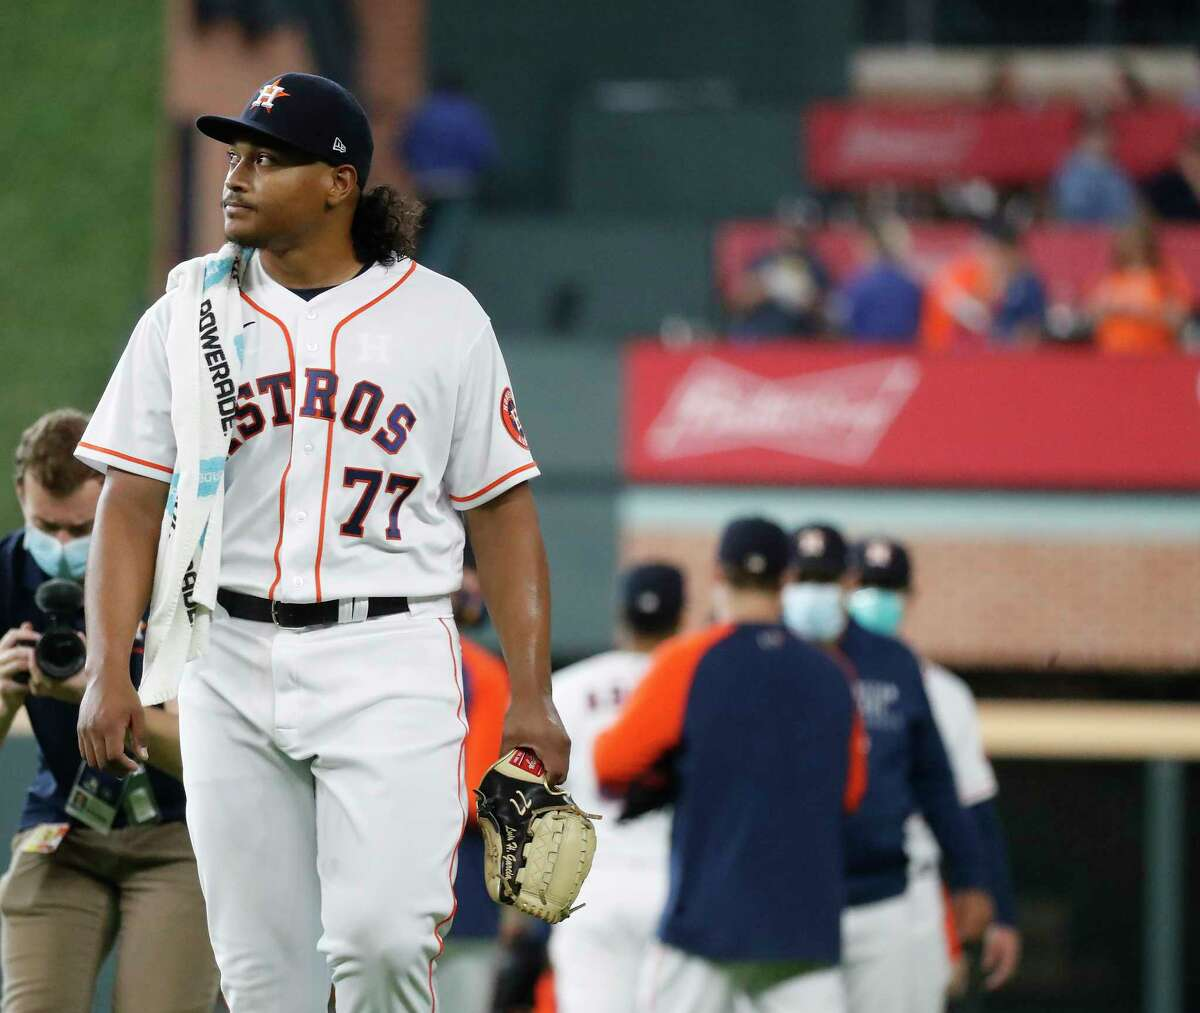 Houston Astros starting pitcher Luis Garcia (77) walks out of the bullpen before the start of the first inning of an MLB baseball game at Minute Maid Park, Thursday April 29, 2021, in Houston.